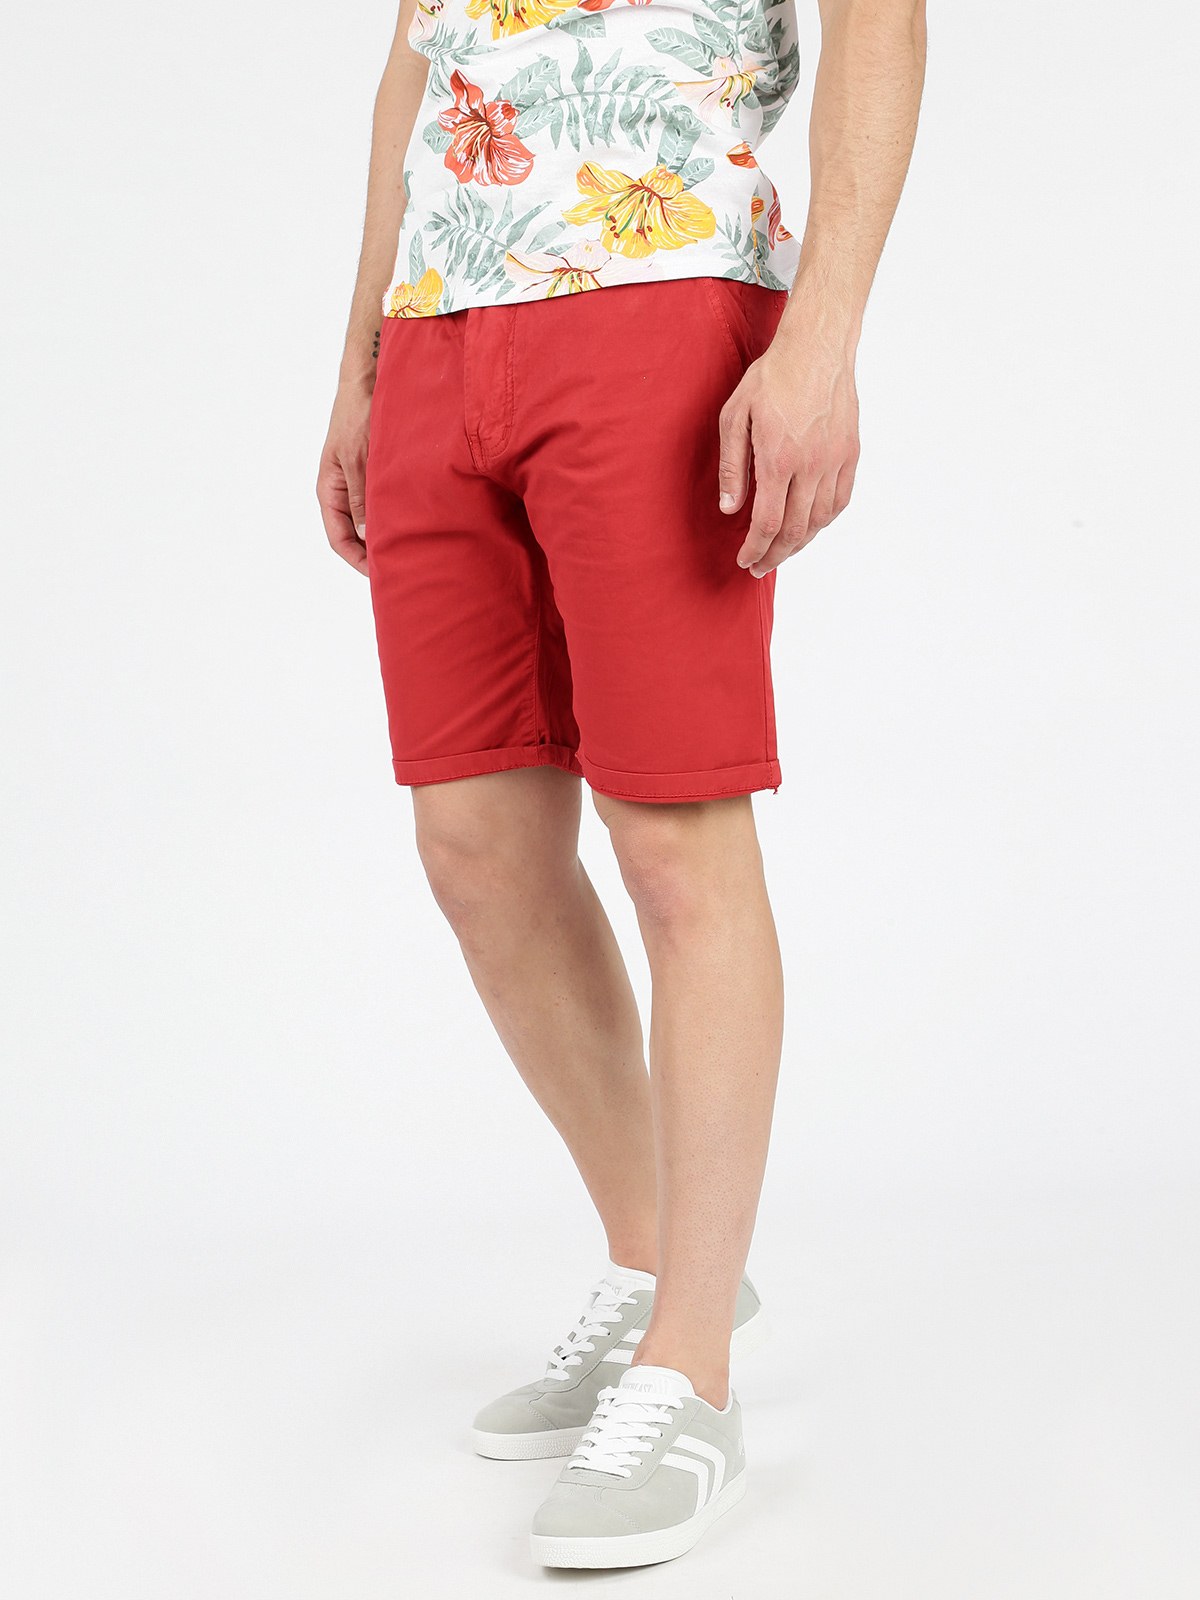 Shorts Men Cotton